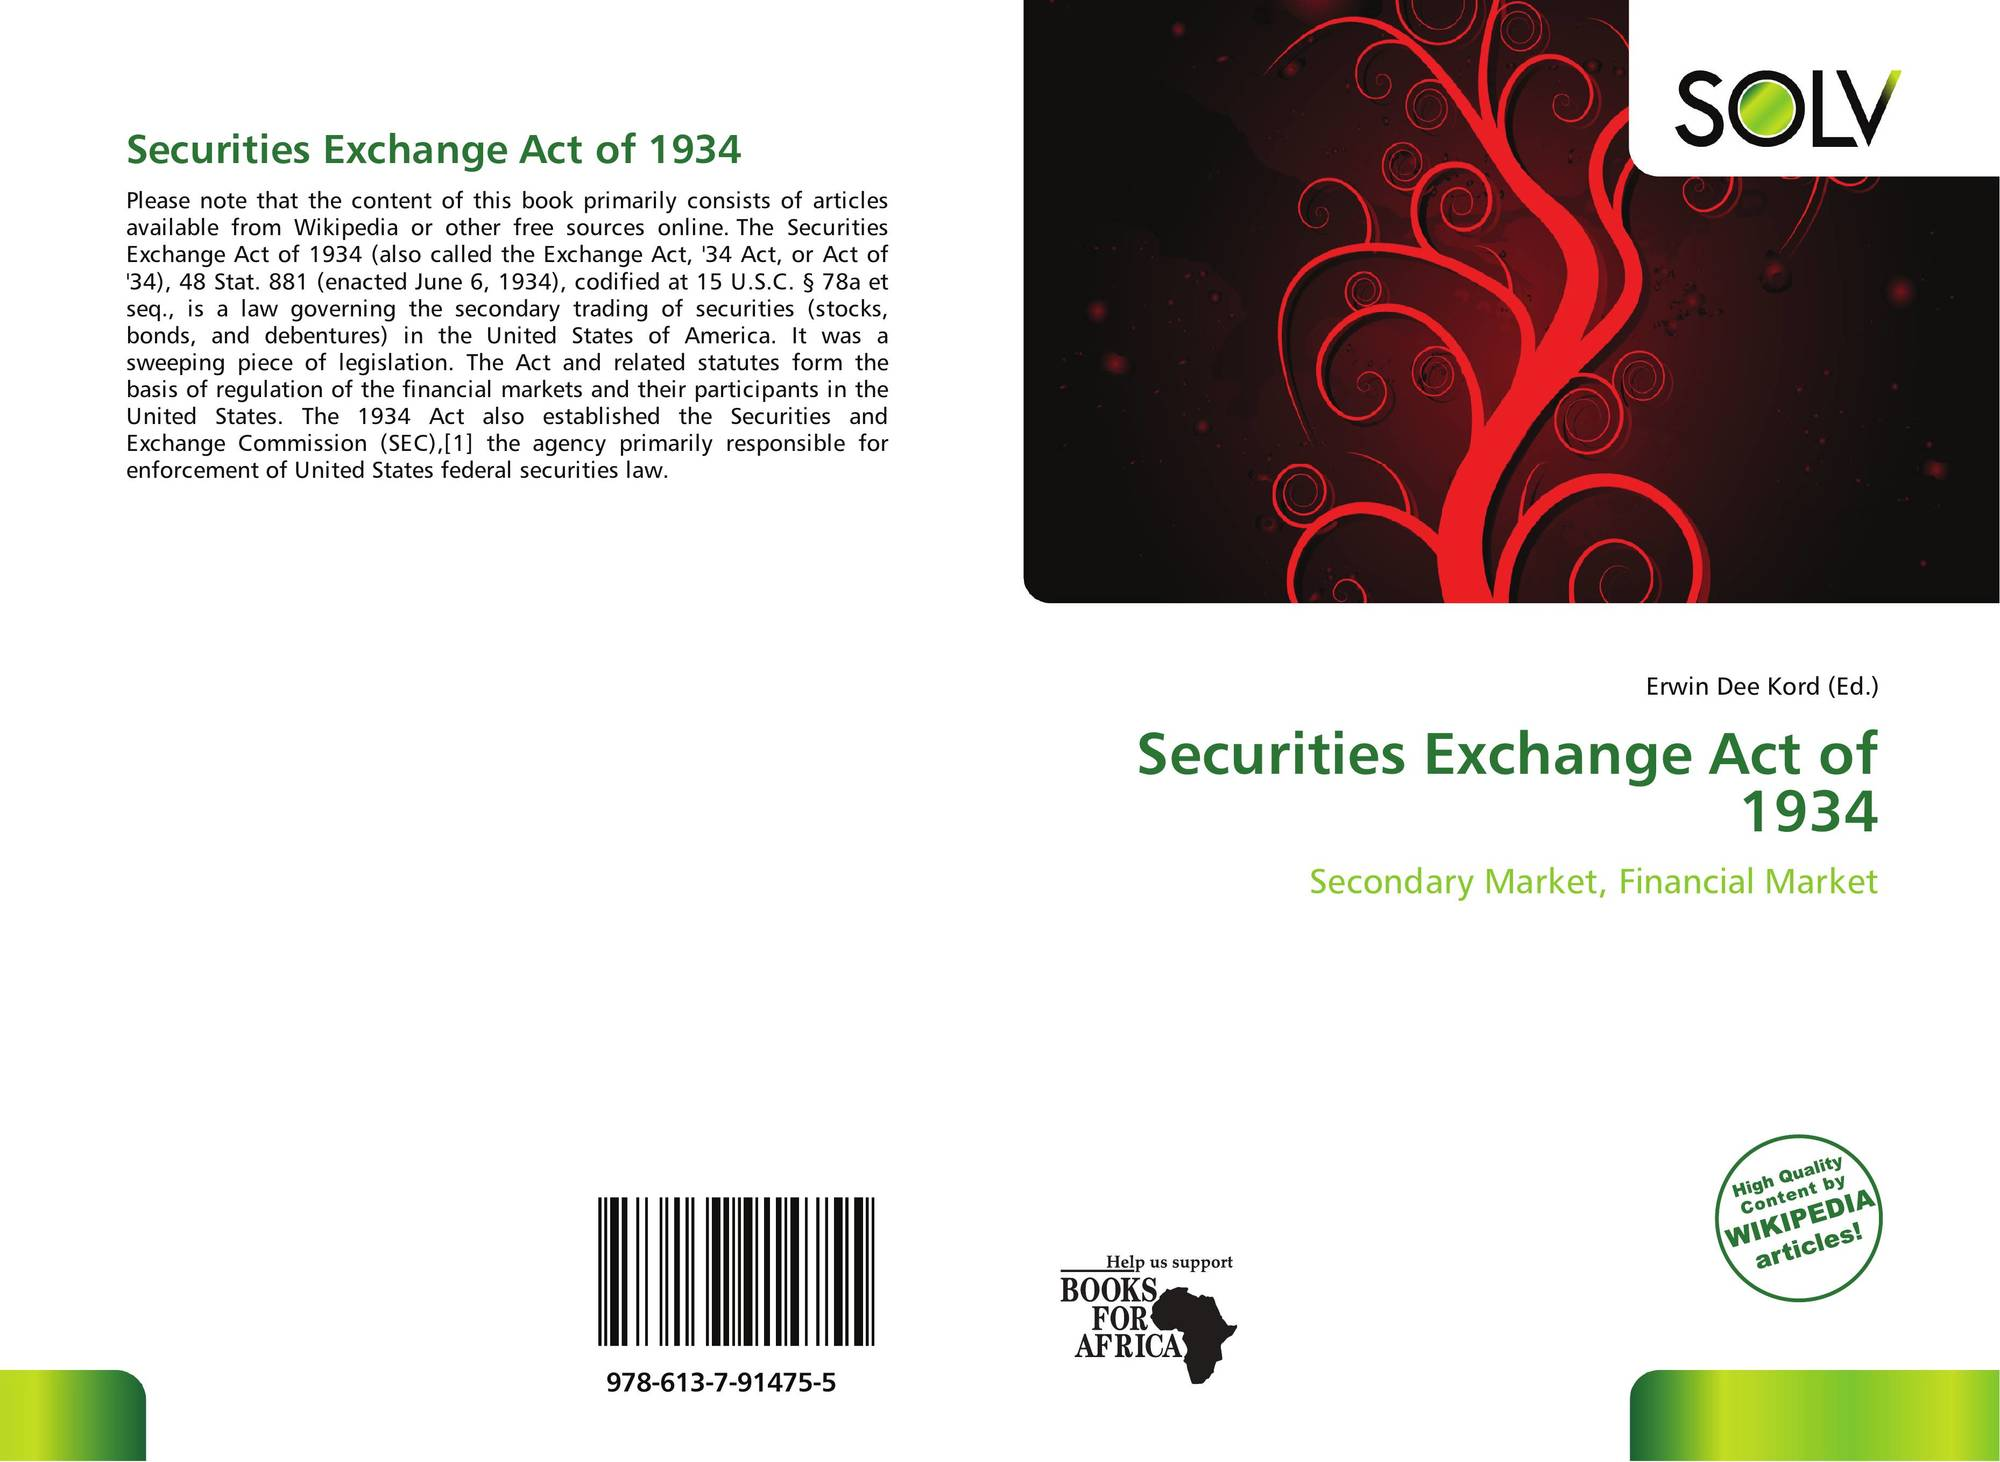 securities exchange act 1934 2018-9-4  the securities exchange act of 1934, also known as the exchange act of 1934 or the 1934 act, authorized the formation of the securities and exchange commission (sec) to regulate the aftermarket for securities through regulation of the securities themselves, markets, and.